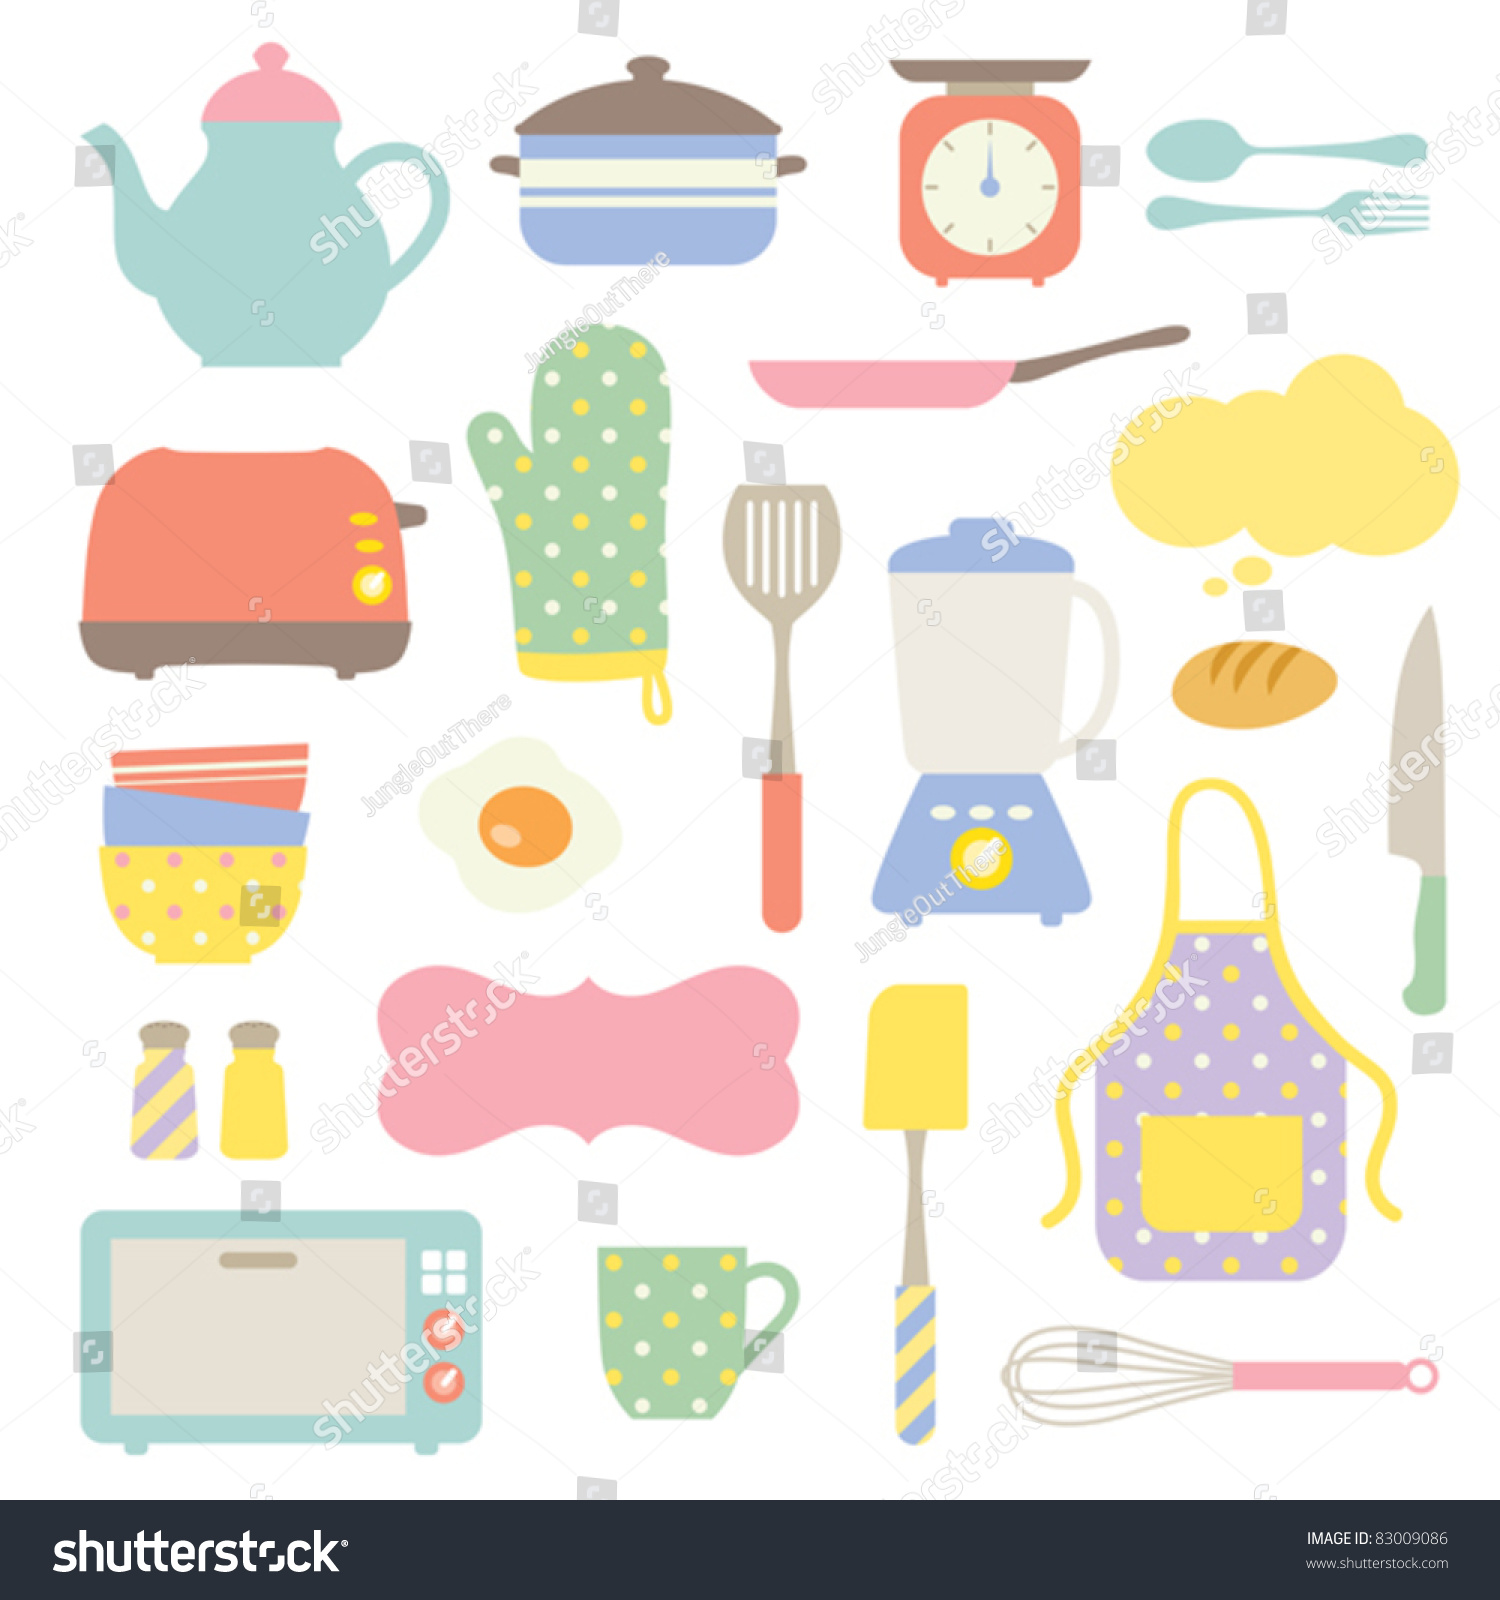 Cute Kitchen Cute Kitchen Collection Stock Vector 83009086 Shutterstock